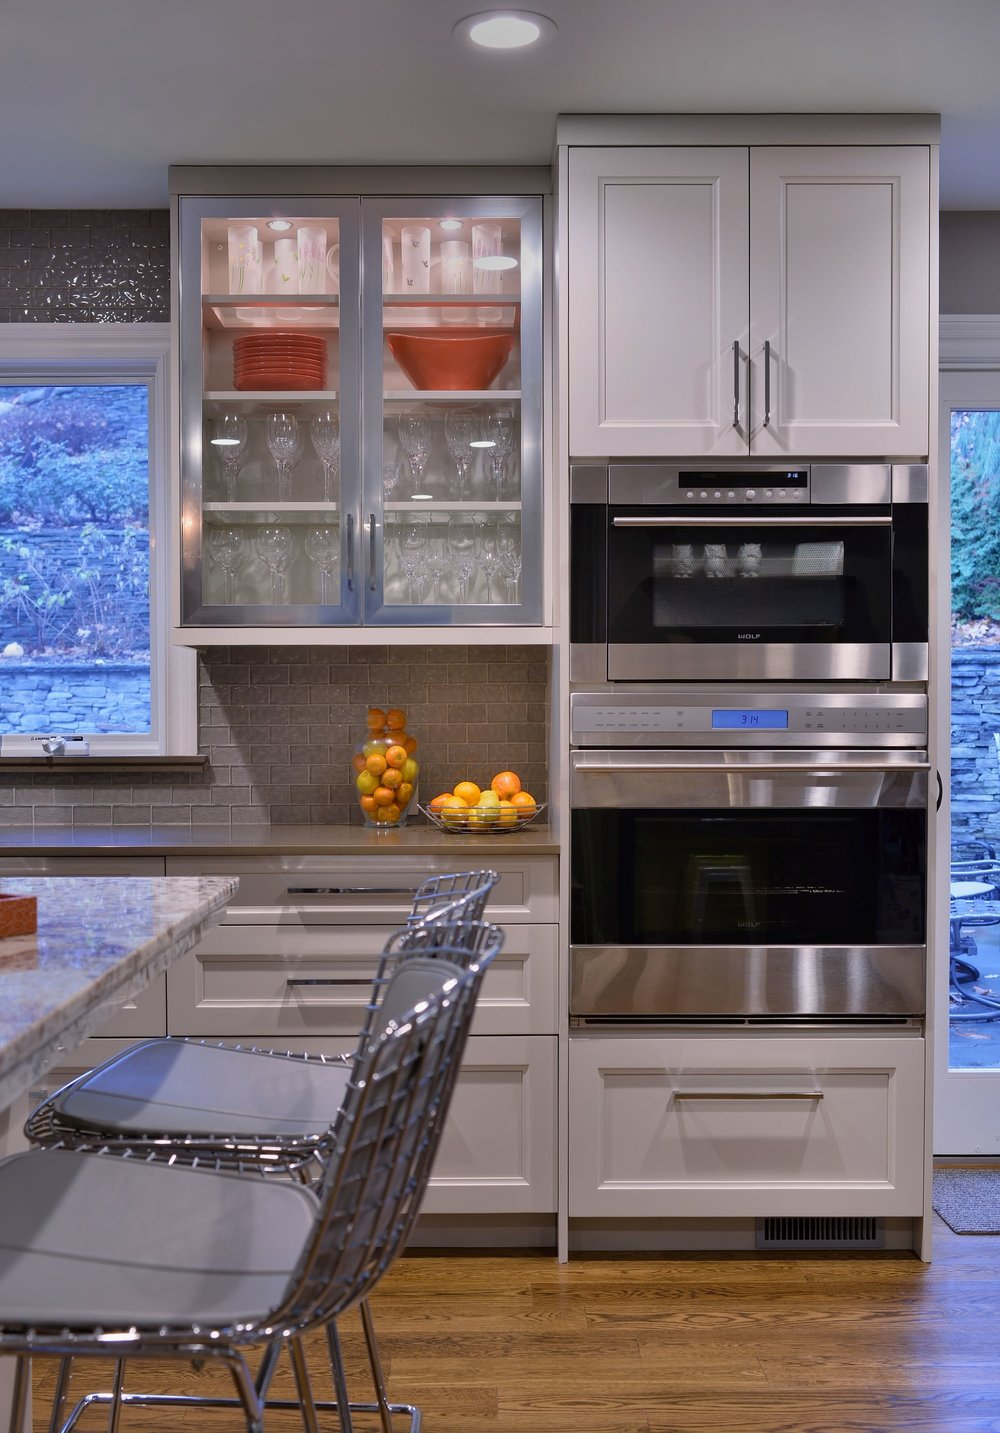 Transitional style kitchen with upper cabinet and speed cooking oven